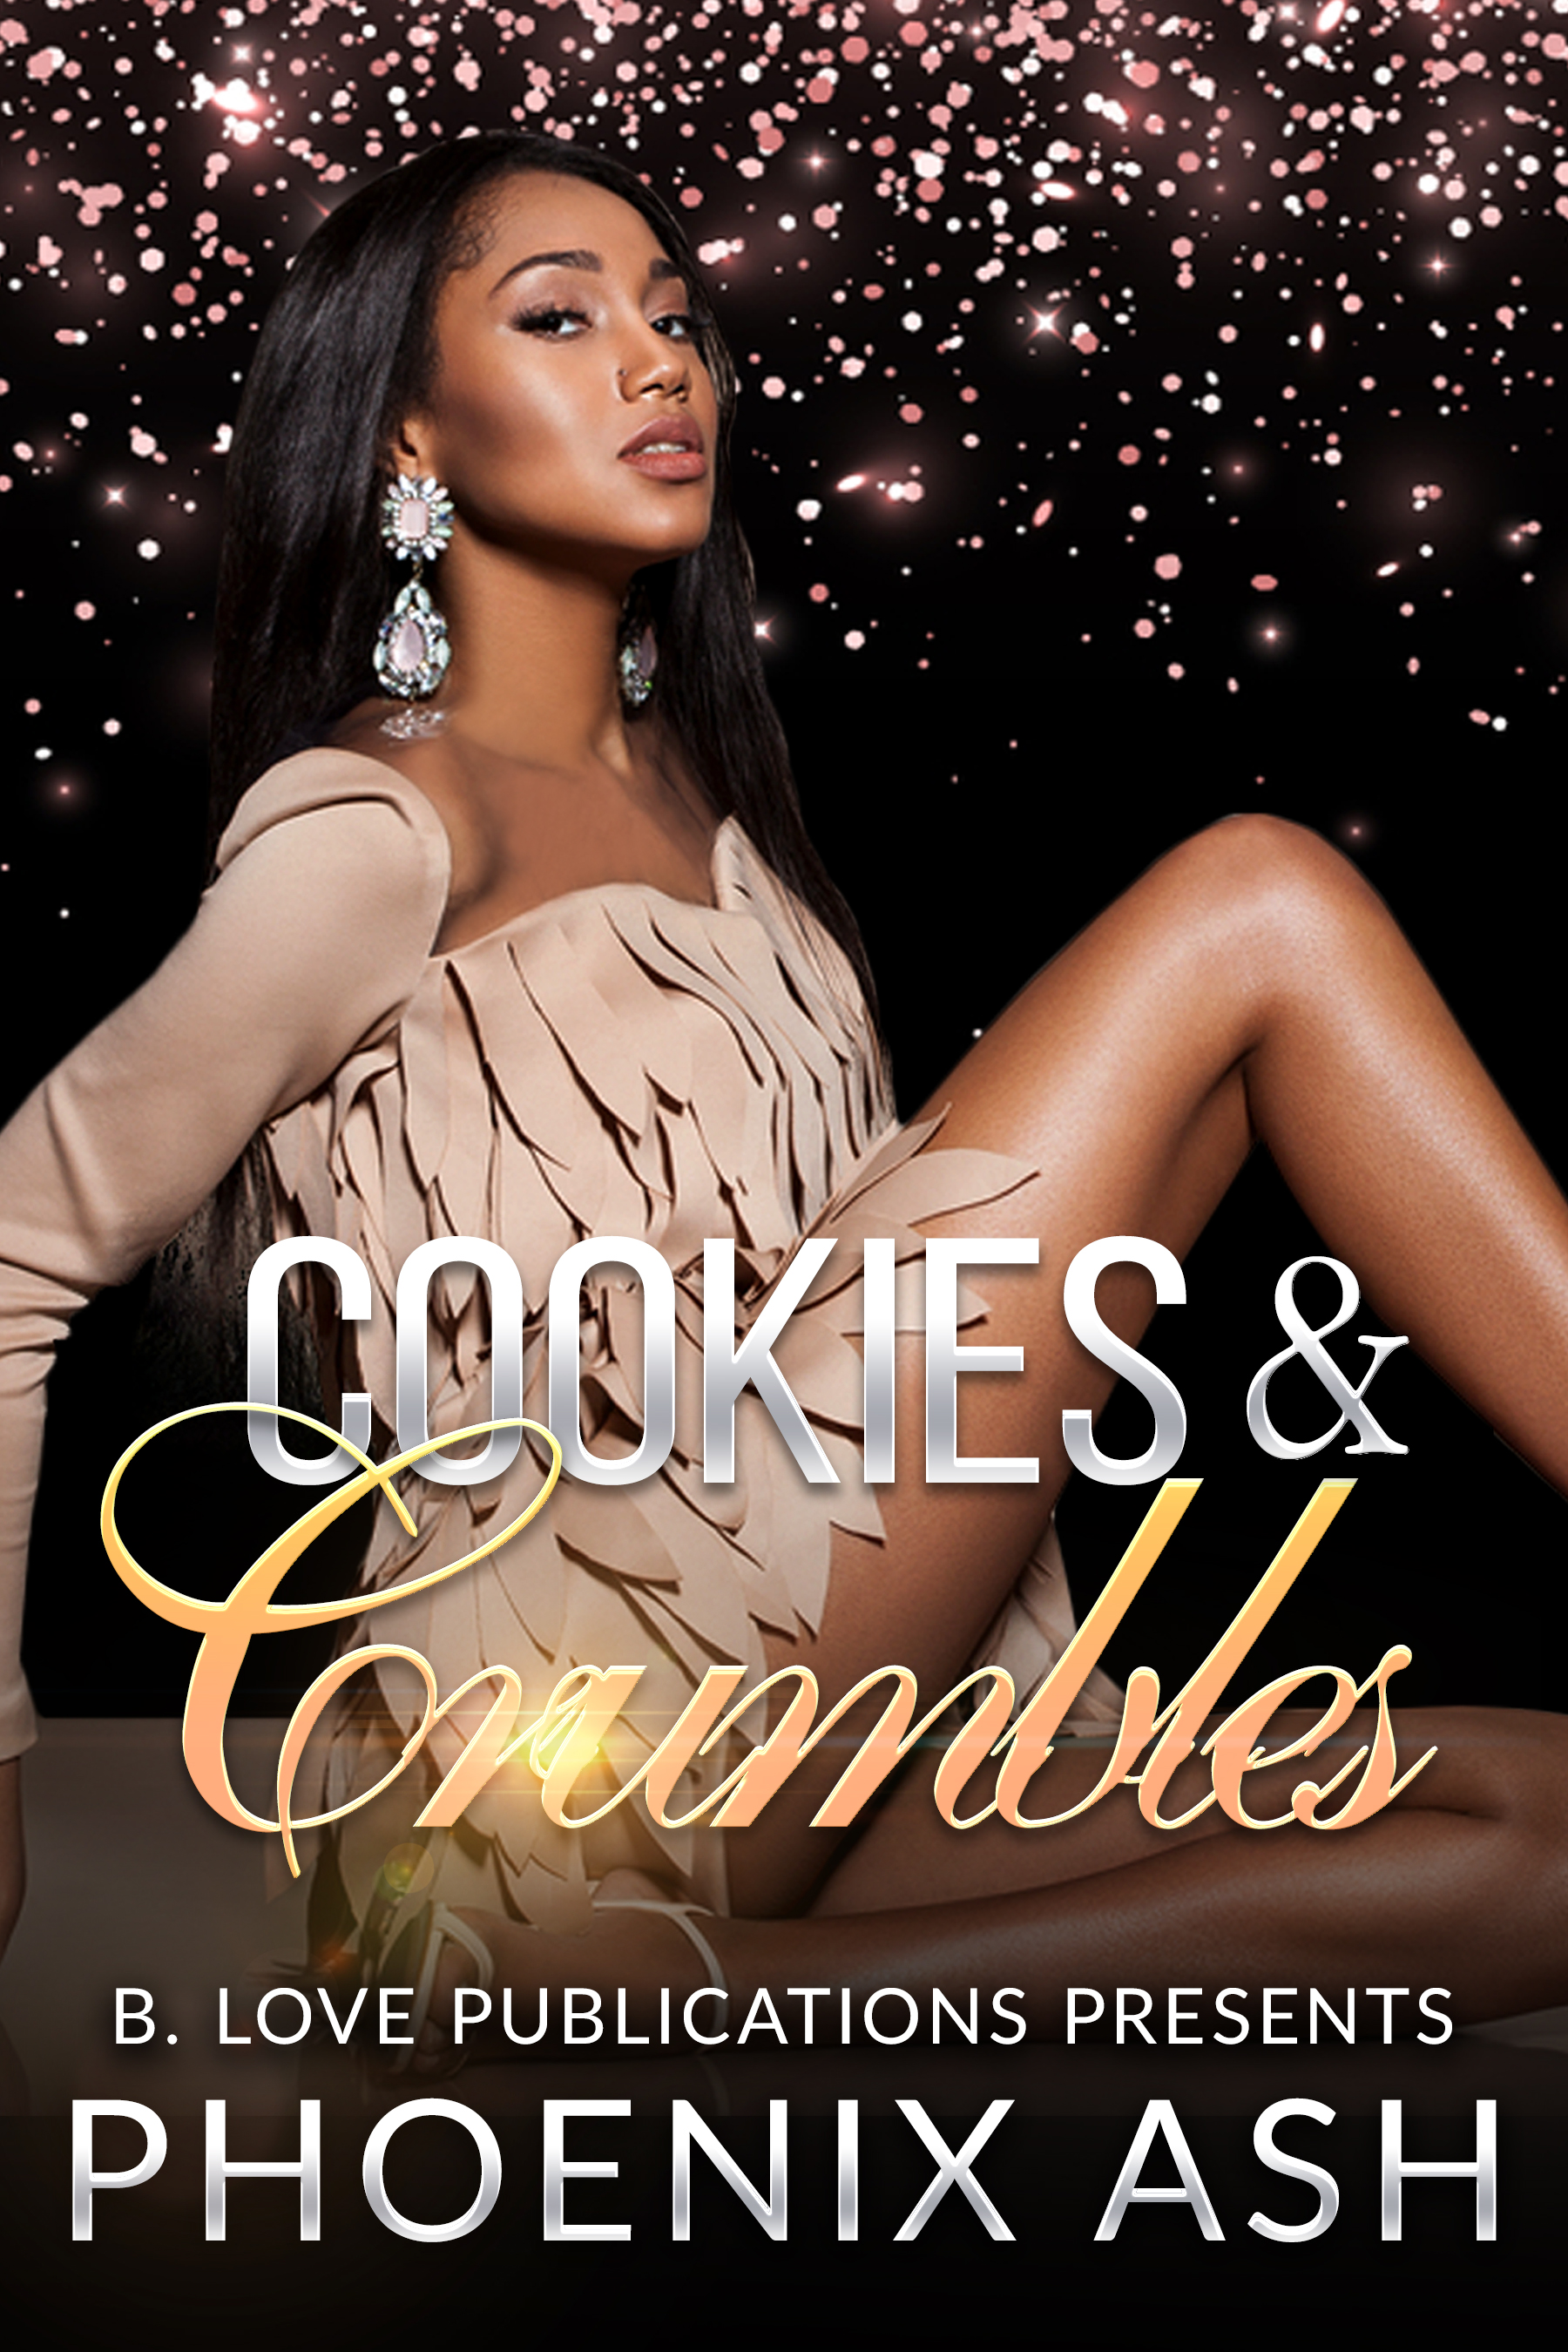 TOMORROW… - Phoenix Ash returns with Cookies & Crumbles and we have one last look before it goes live!